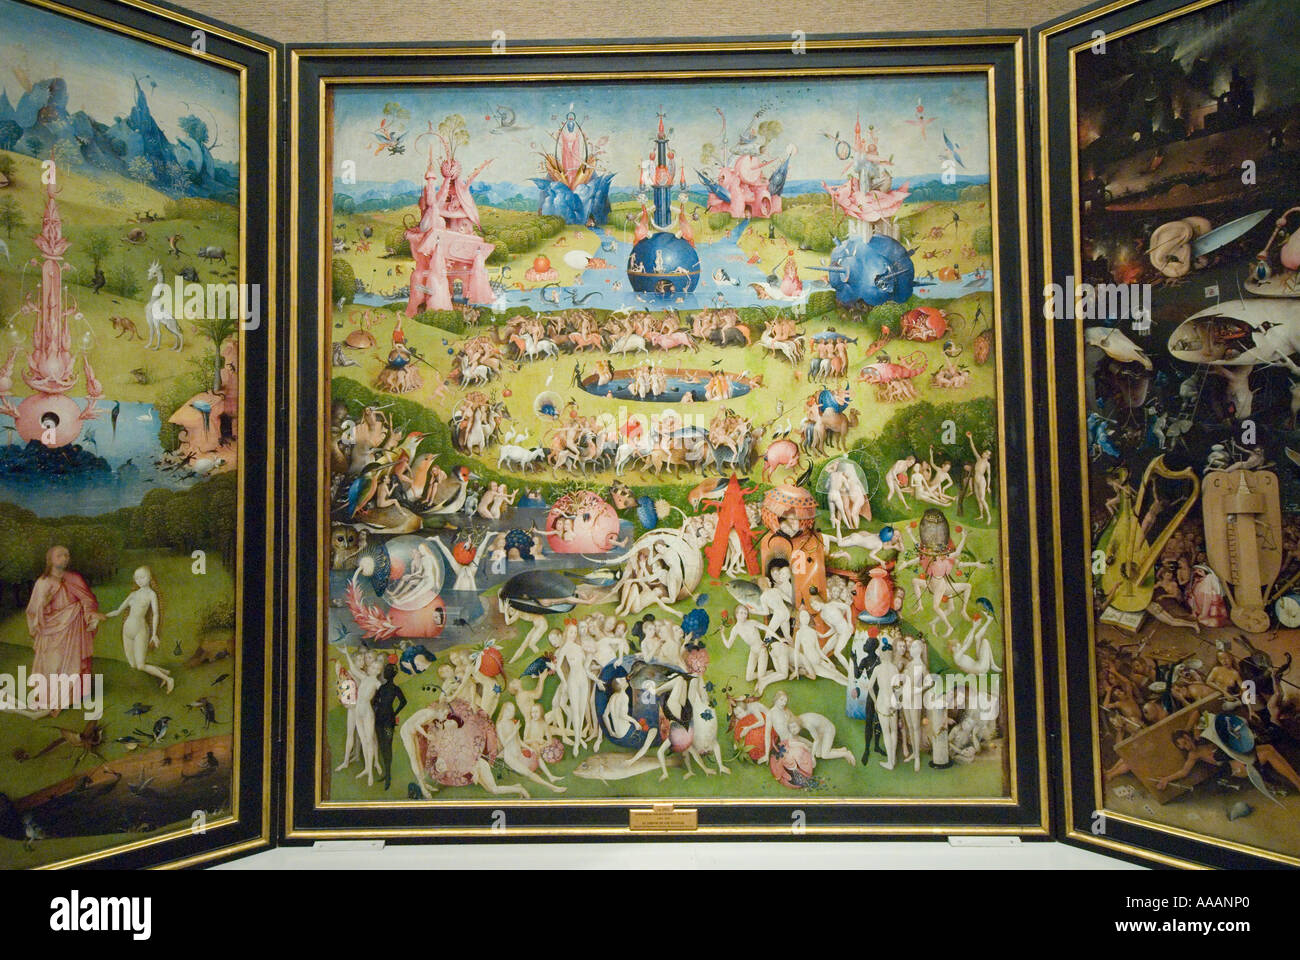 The Garden of Earthly Delights painting by Hieronymous Bosch